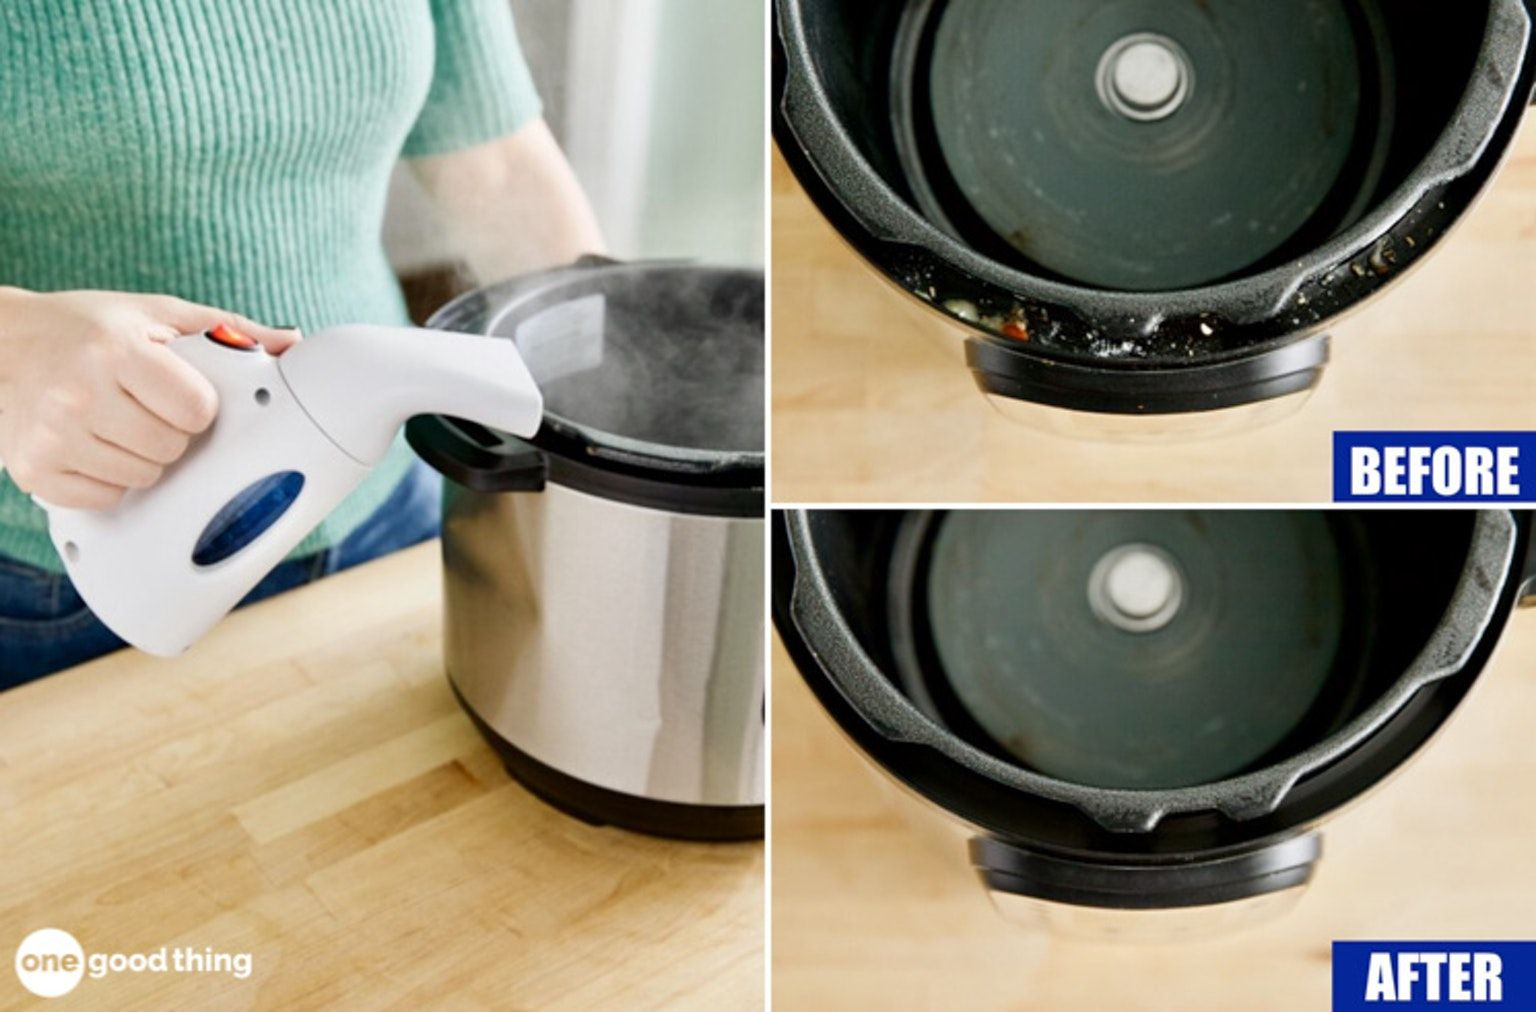 How To Clean Grimy Kitchen Cabinets With 2 Ingredients In 2020 Cleaning Hacks Car Cleaning Hacks Front Loading Washing Machine